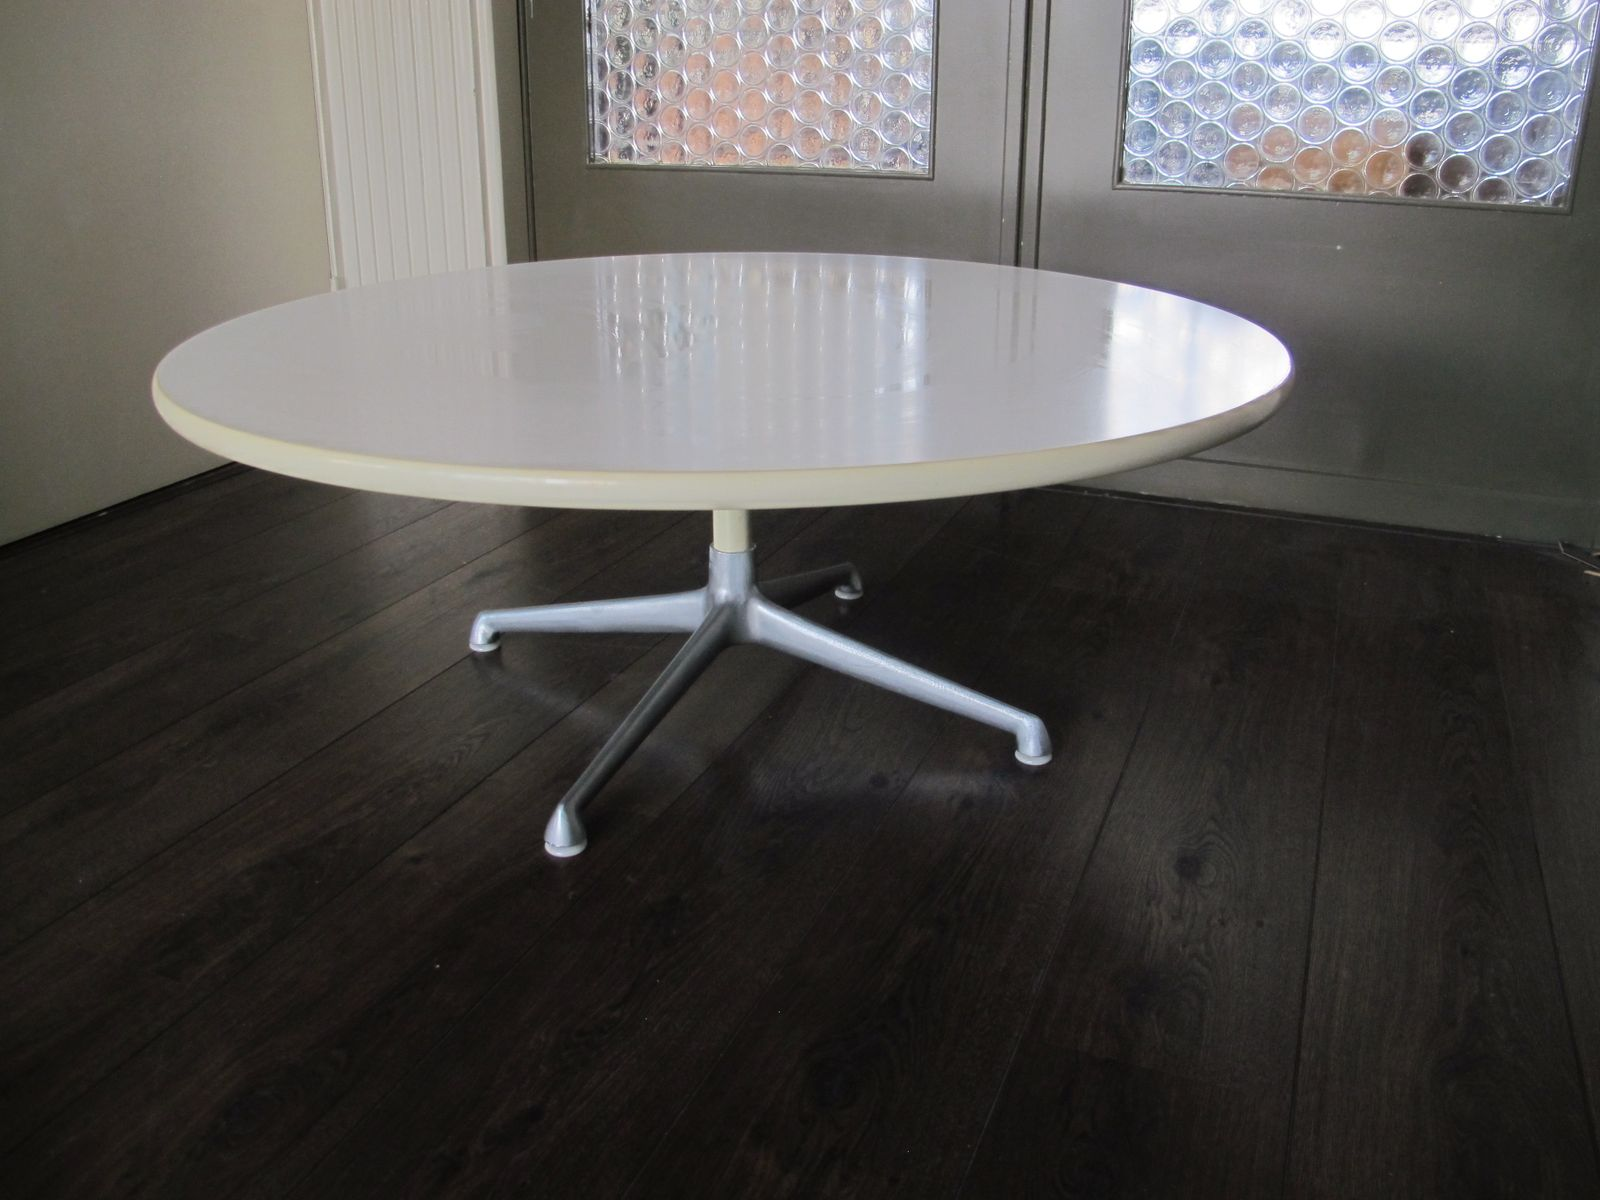 vintage circular coffee table by charles ray eames for herman